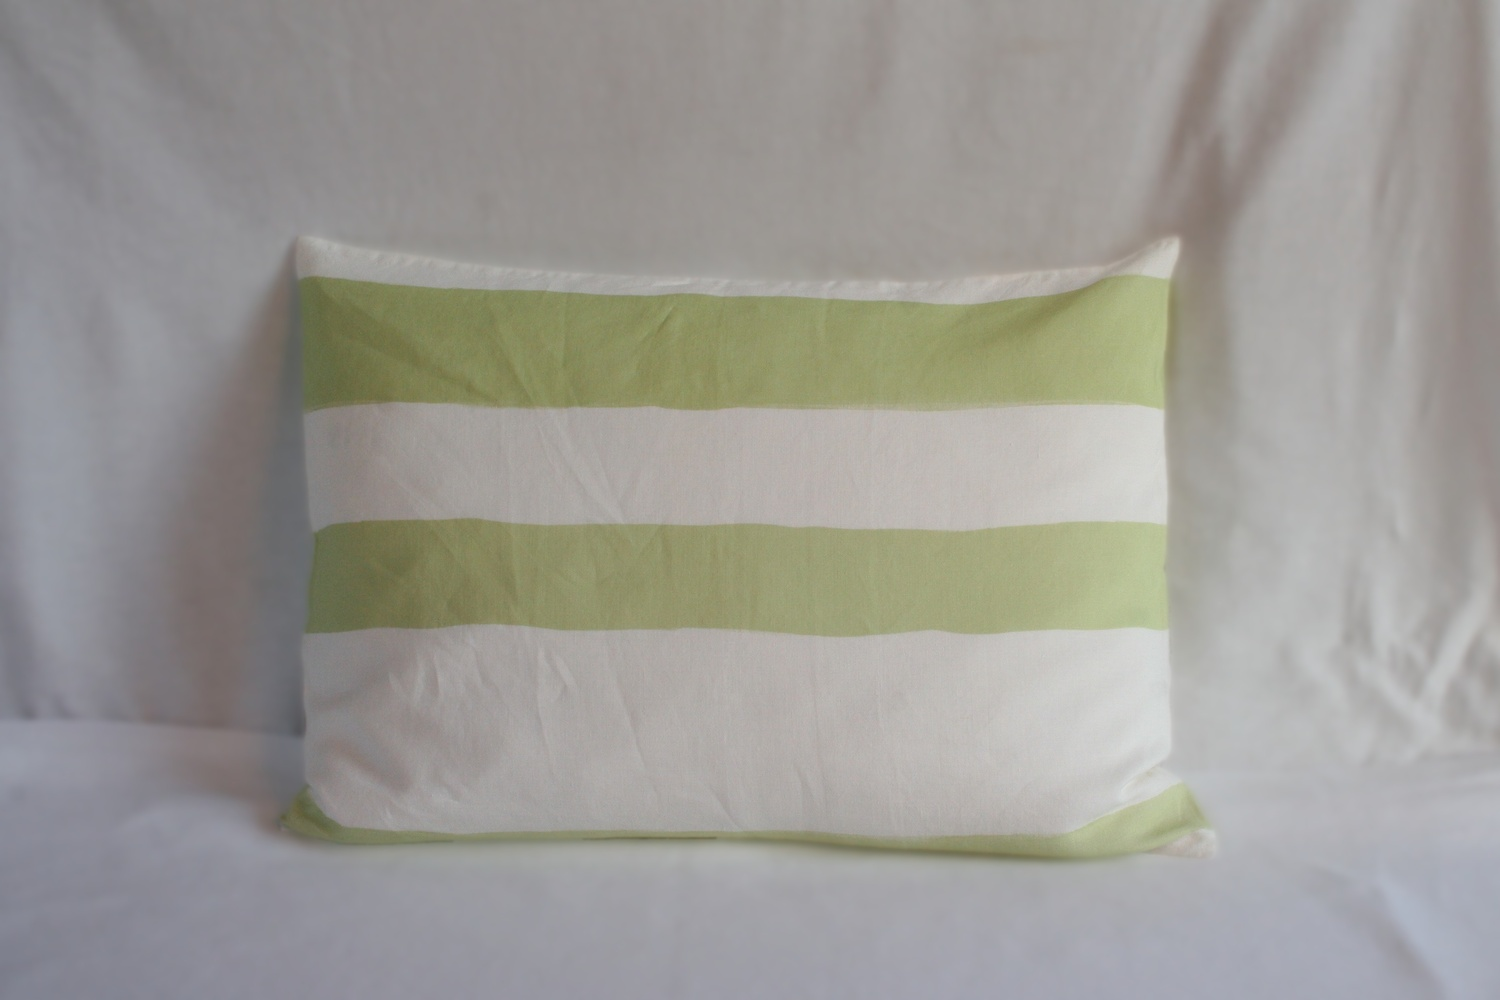 Flemish Landscape / Set of duvet cover and pillow case with thick green stripe